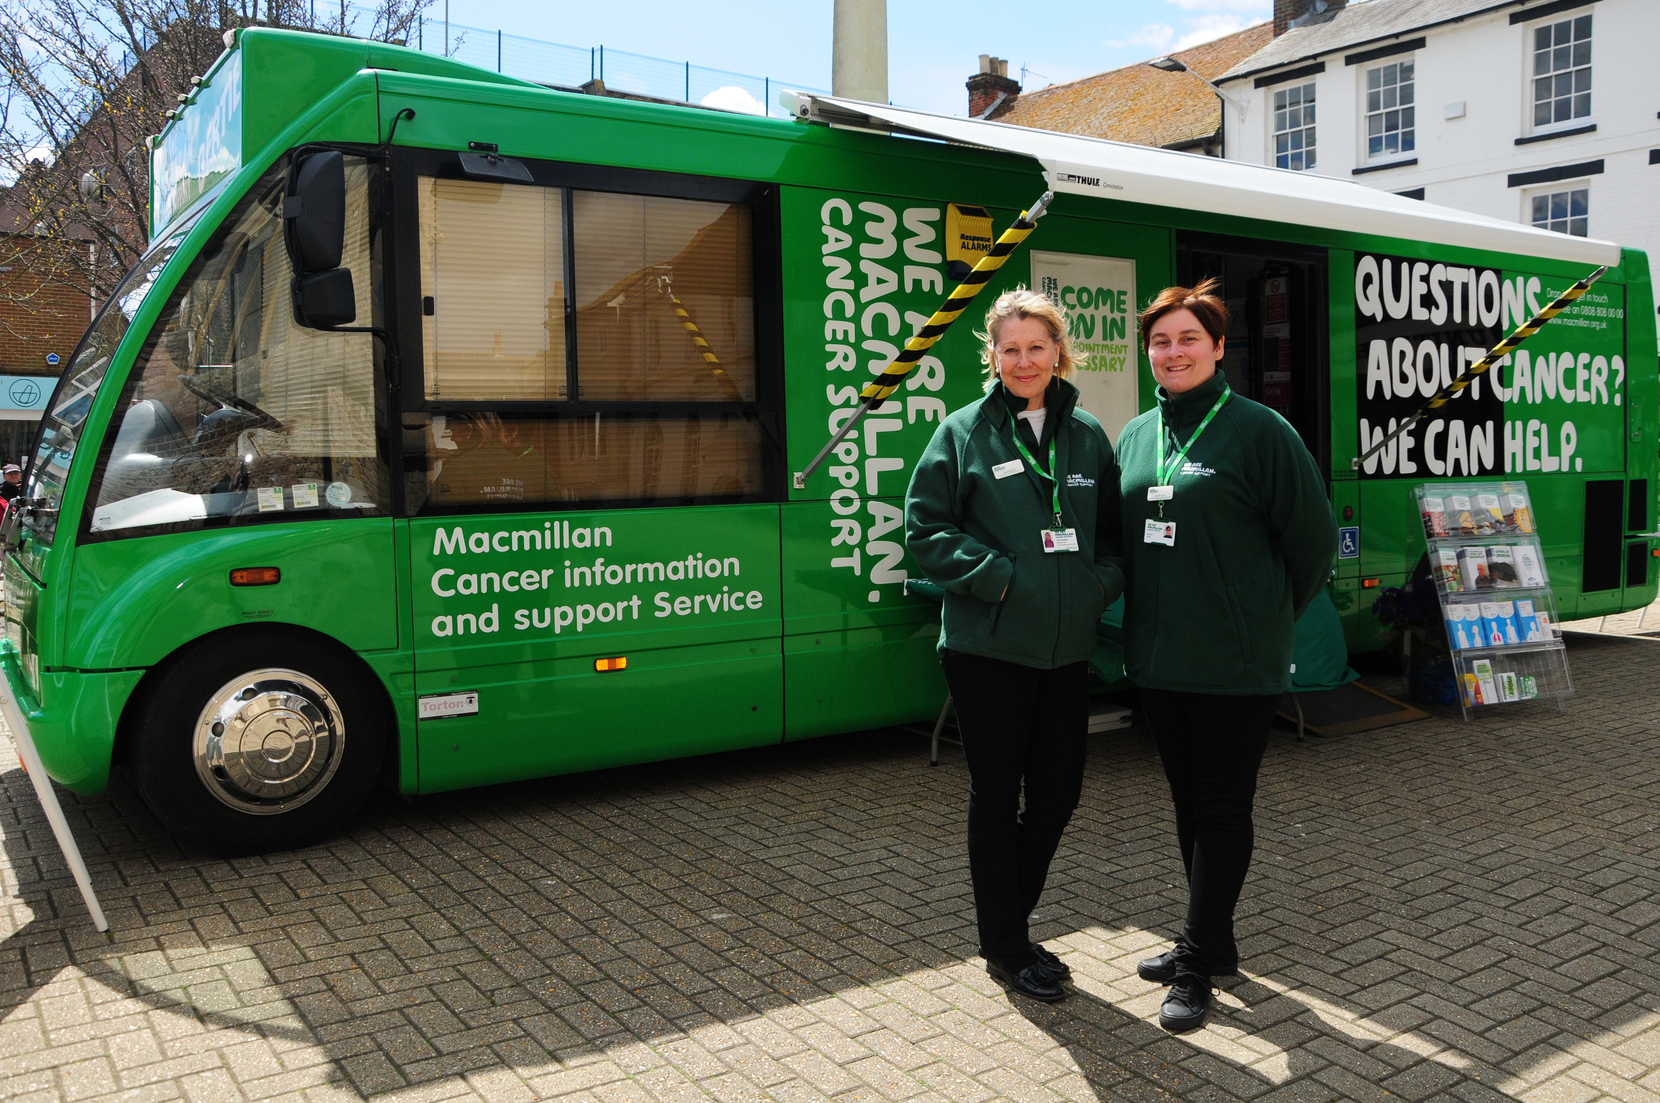 Macmillan Cancer Support Information Service in Bristol